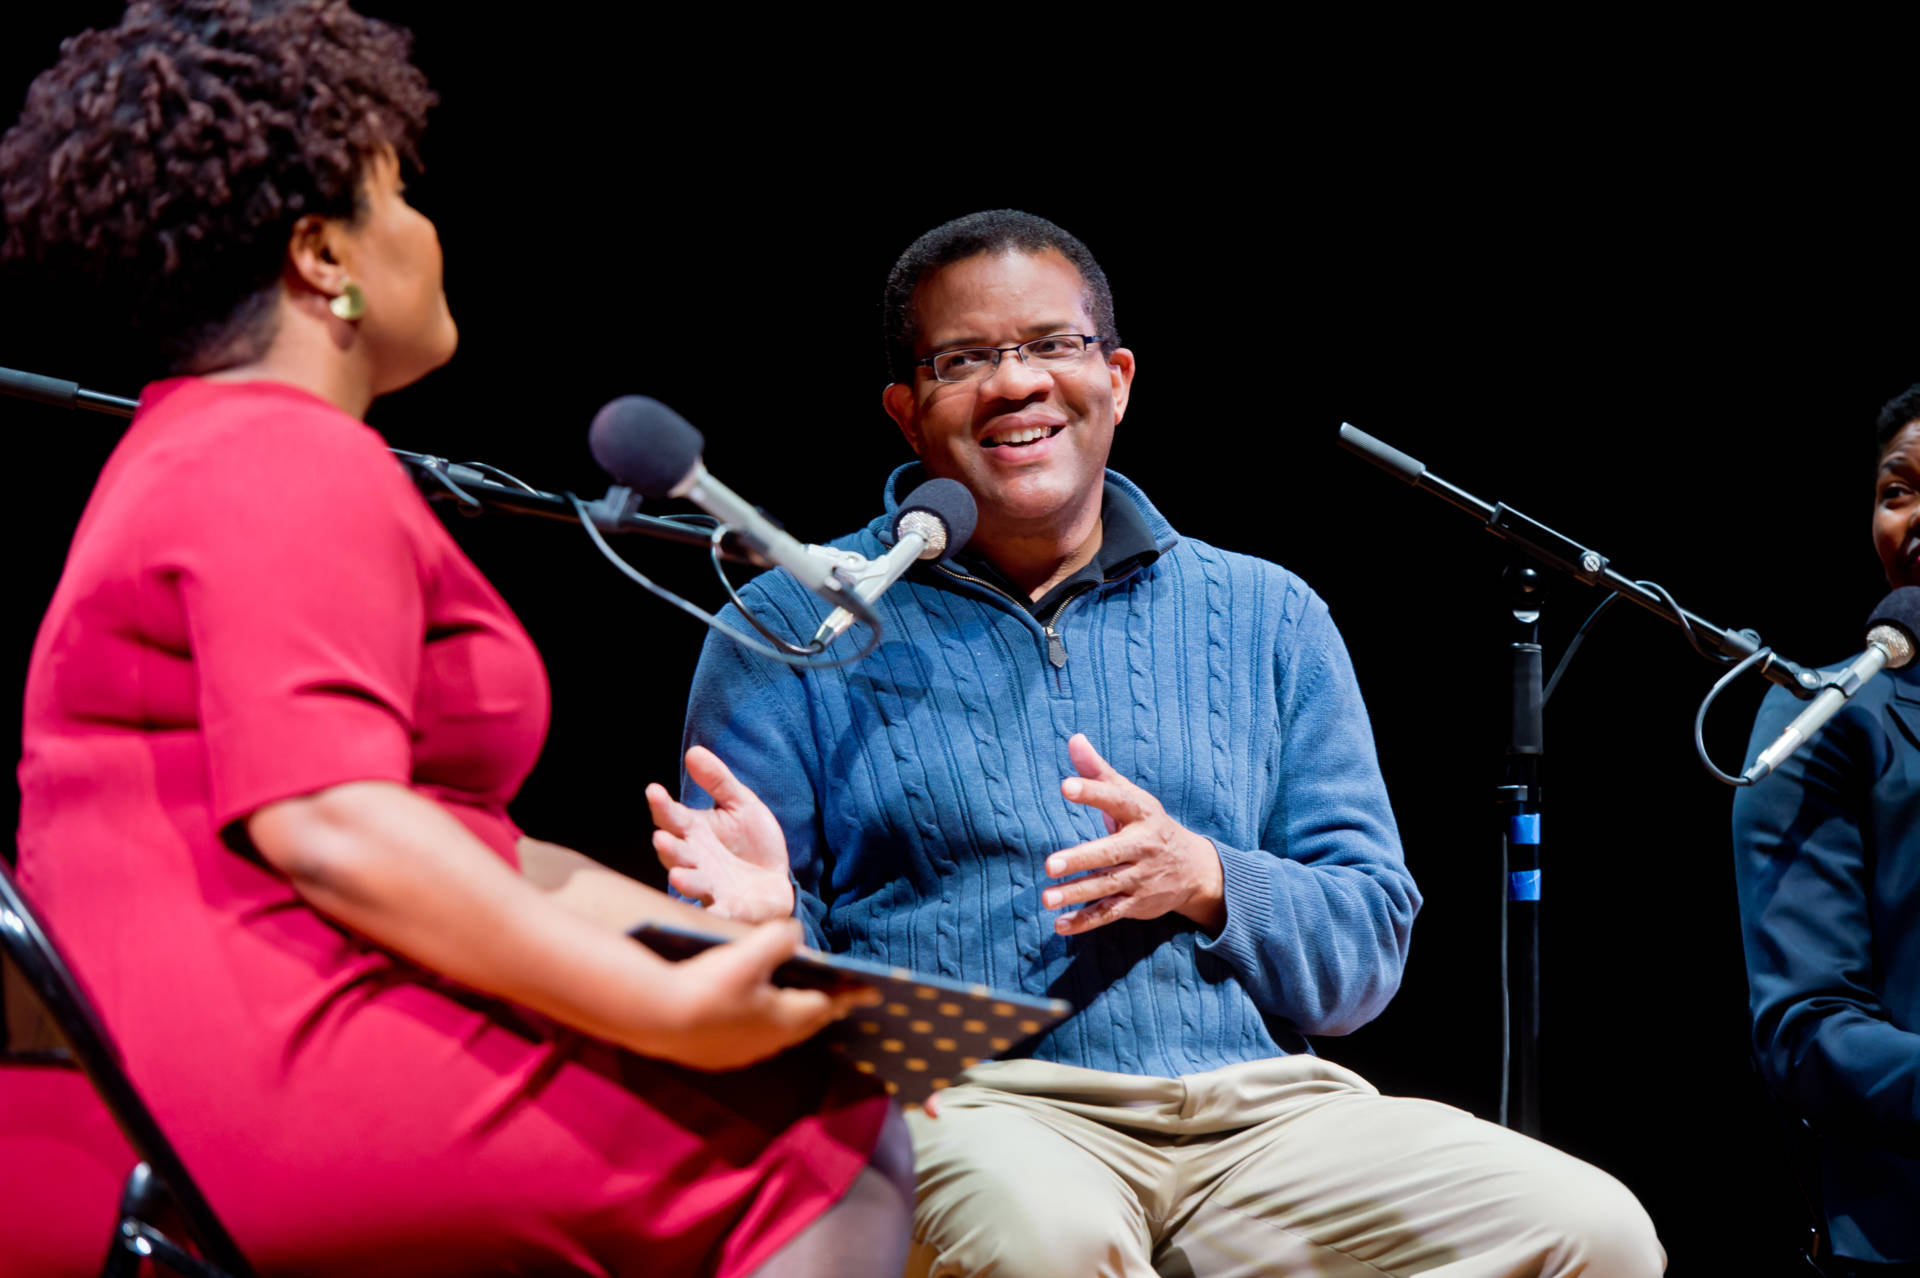 Dr. Tony Iton talks with KQED's Tonya Mosley at the Bayview Opera House on May 7, 2018. Alain McLaughlin/Alain McLaughlin Photography Inc